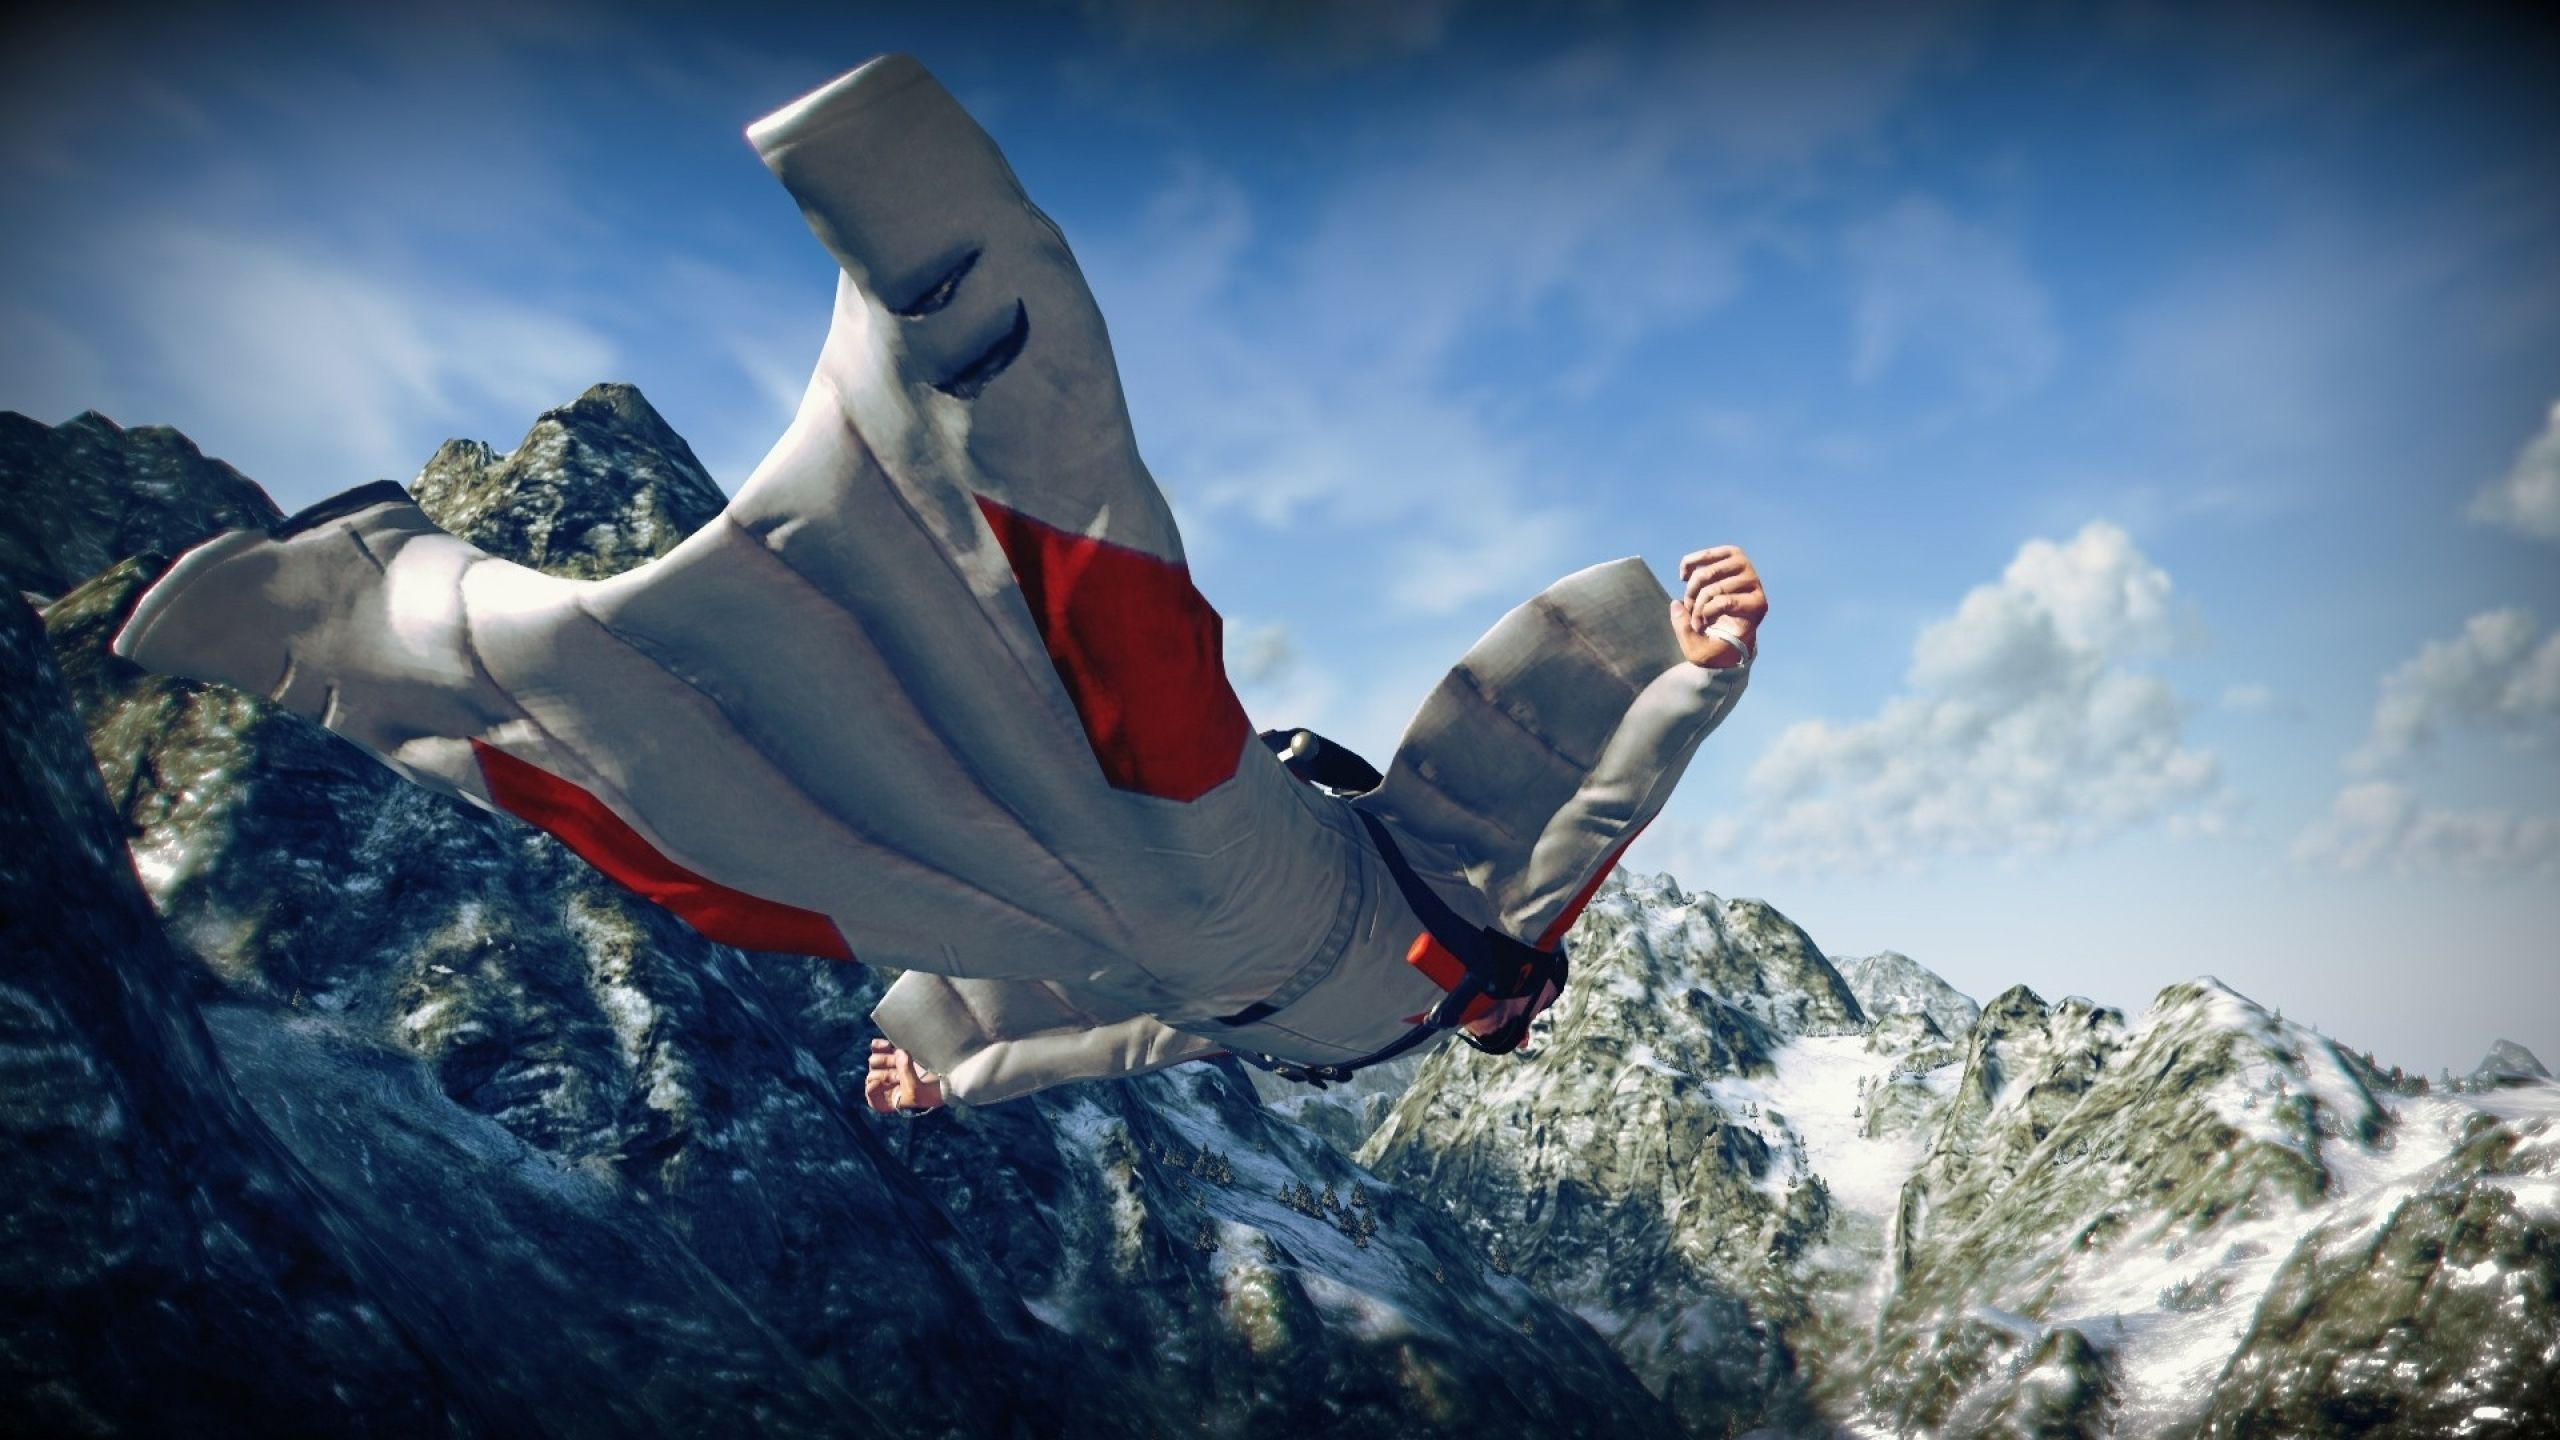 Base Jumping Adventure Sports Wallpaper: Outdoors Adventure, Skydiving, Base Jumping